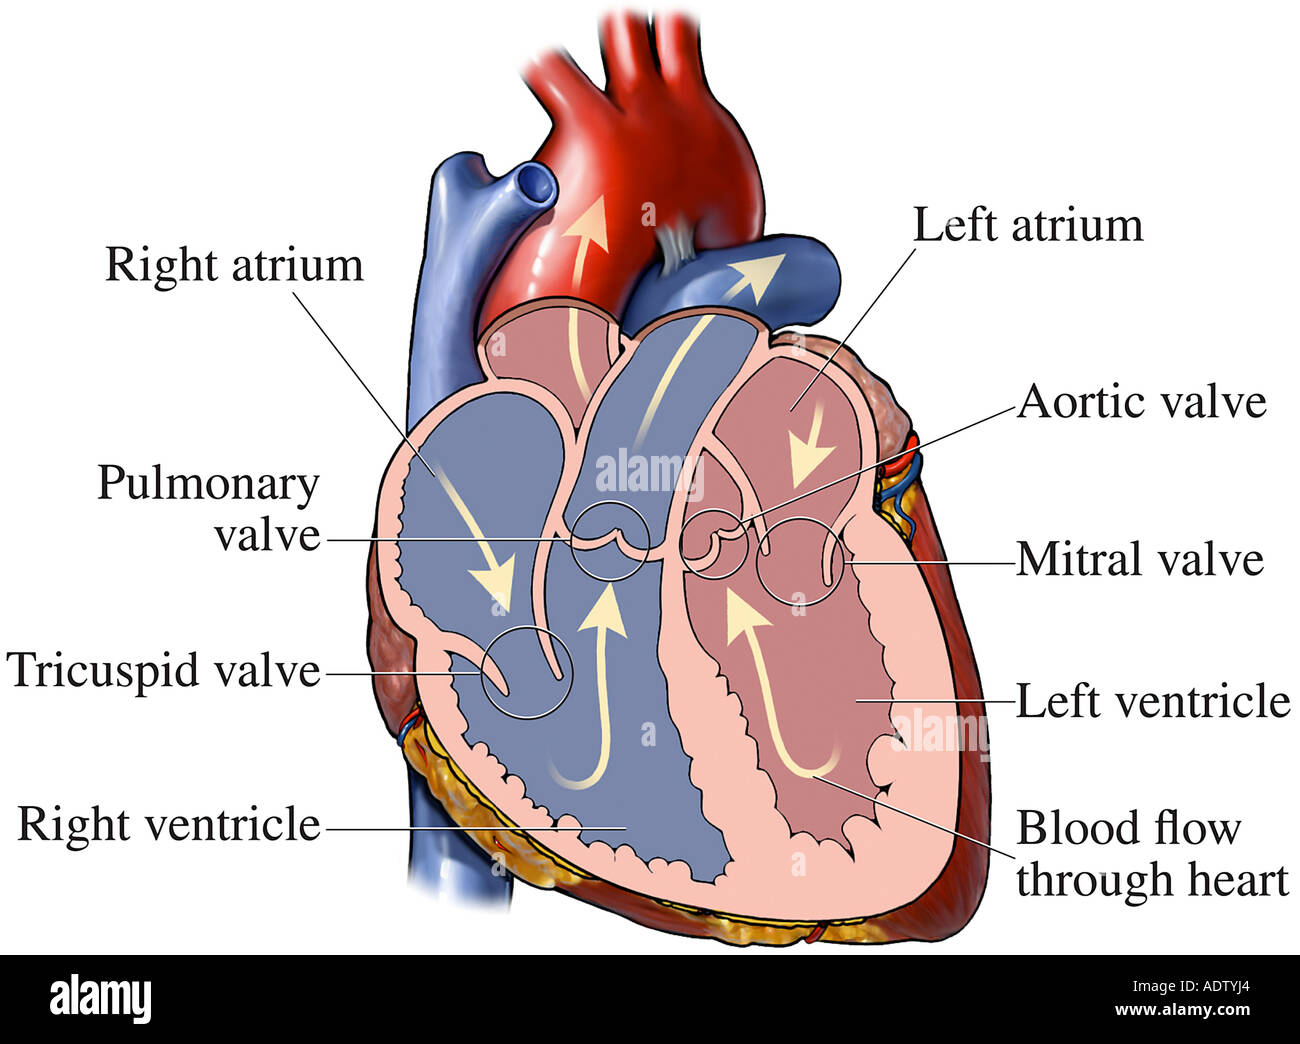 Normal Heart Anatomy Stock Photo 7710819 Alamy